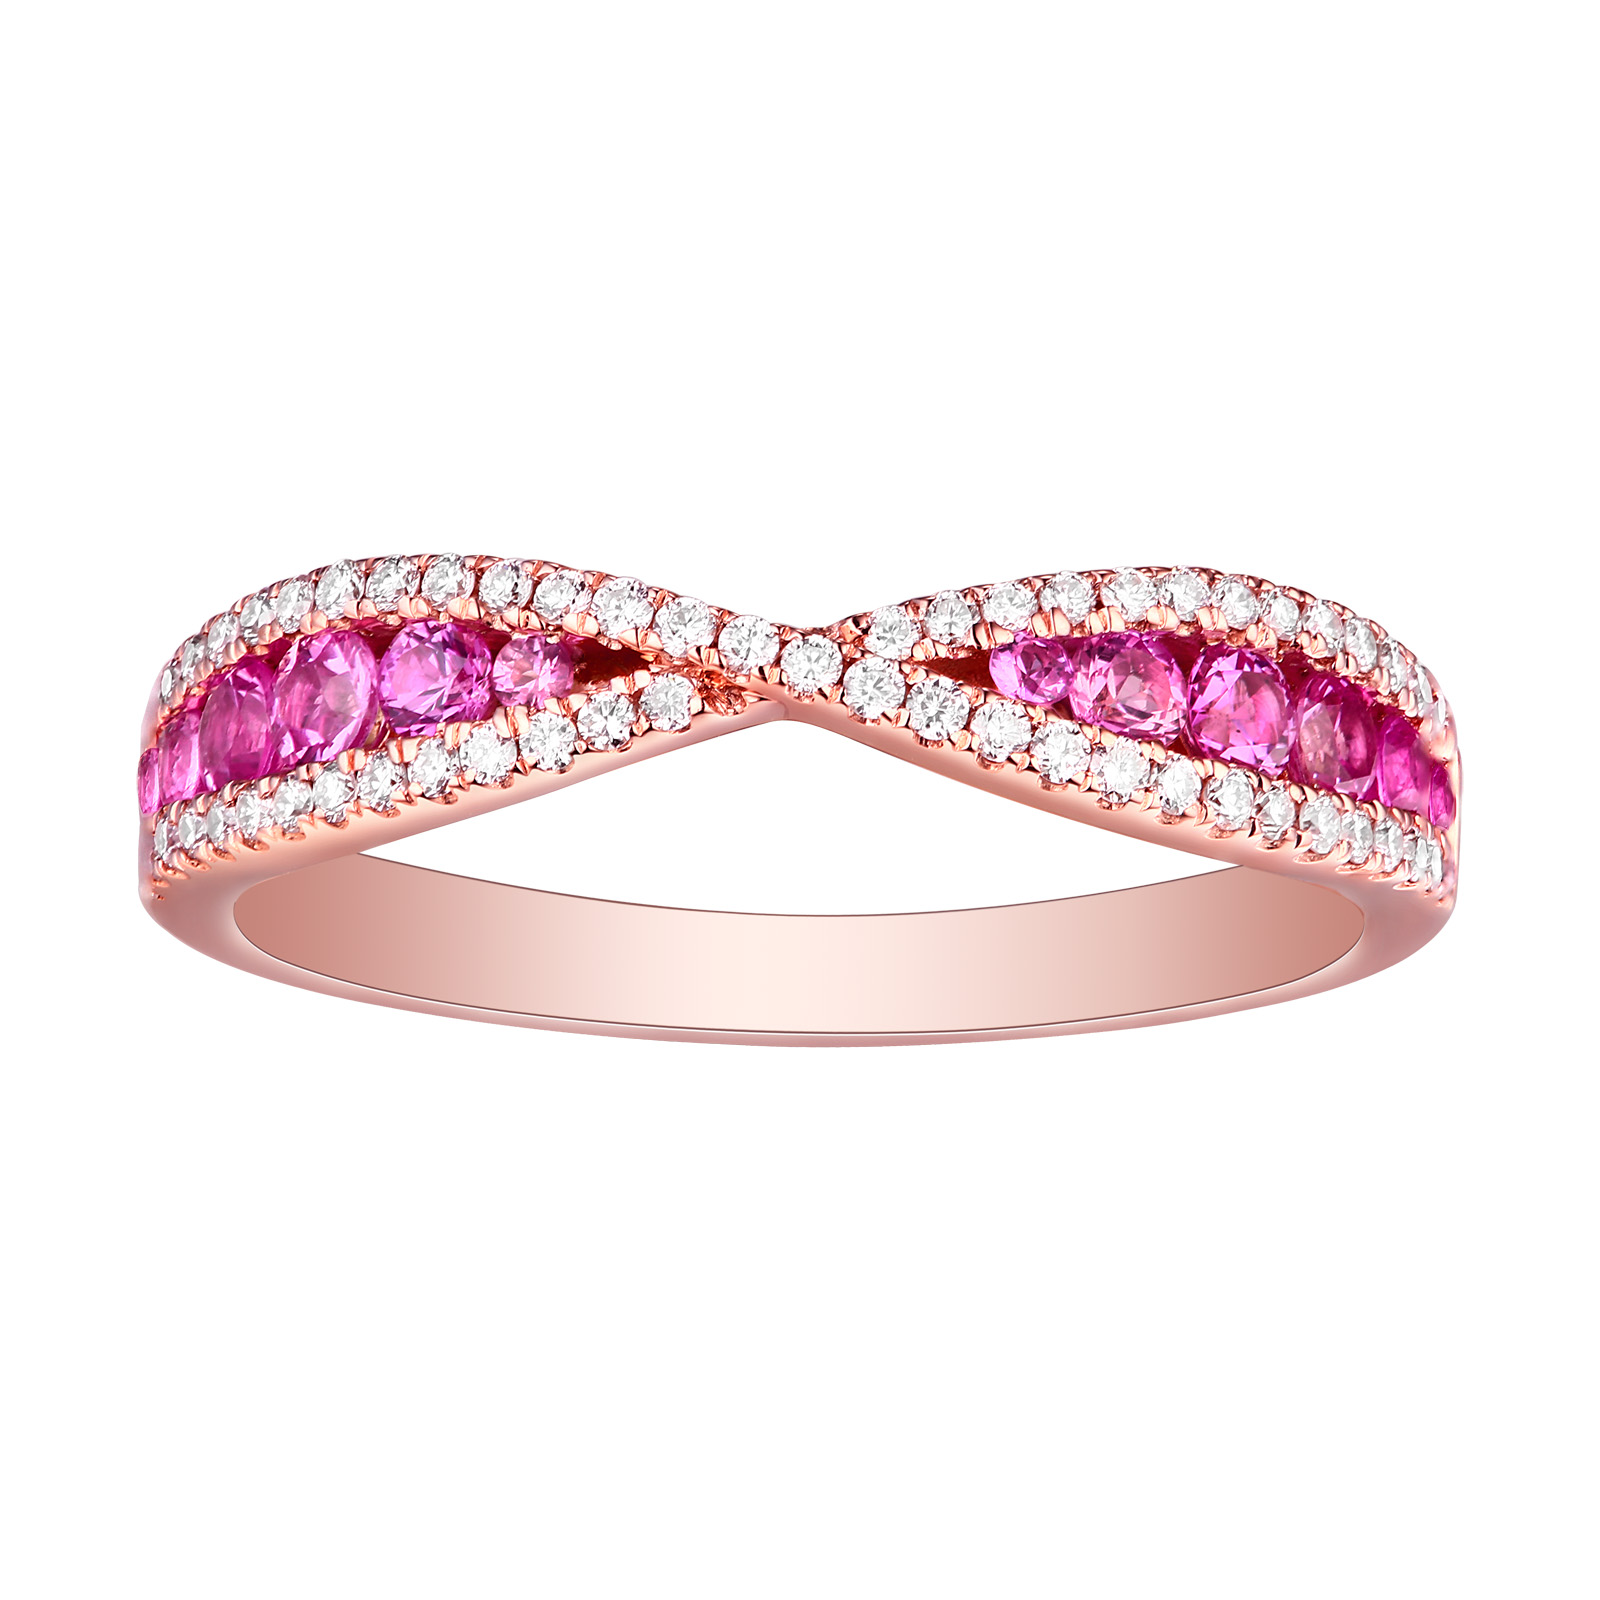 R22815PSA – 14K Rose Gold Pink Sapphire and Diamond Ring, 0.69 TCW